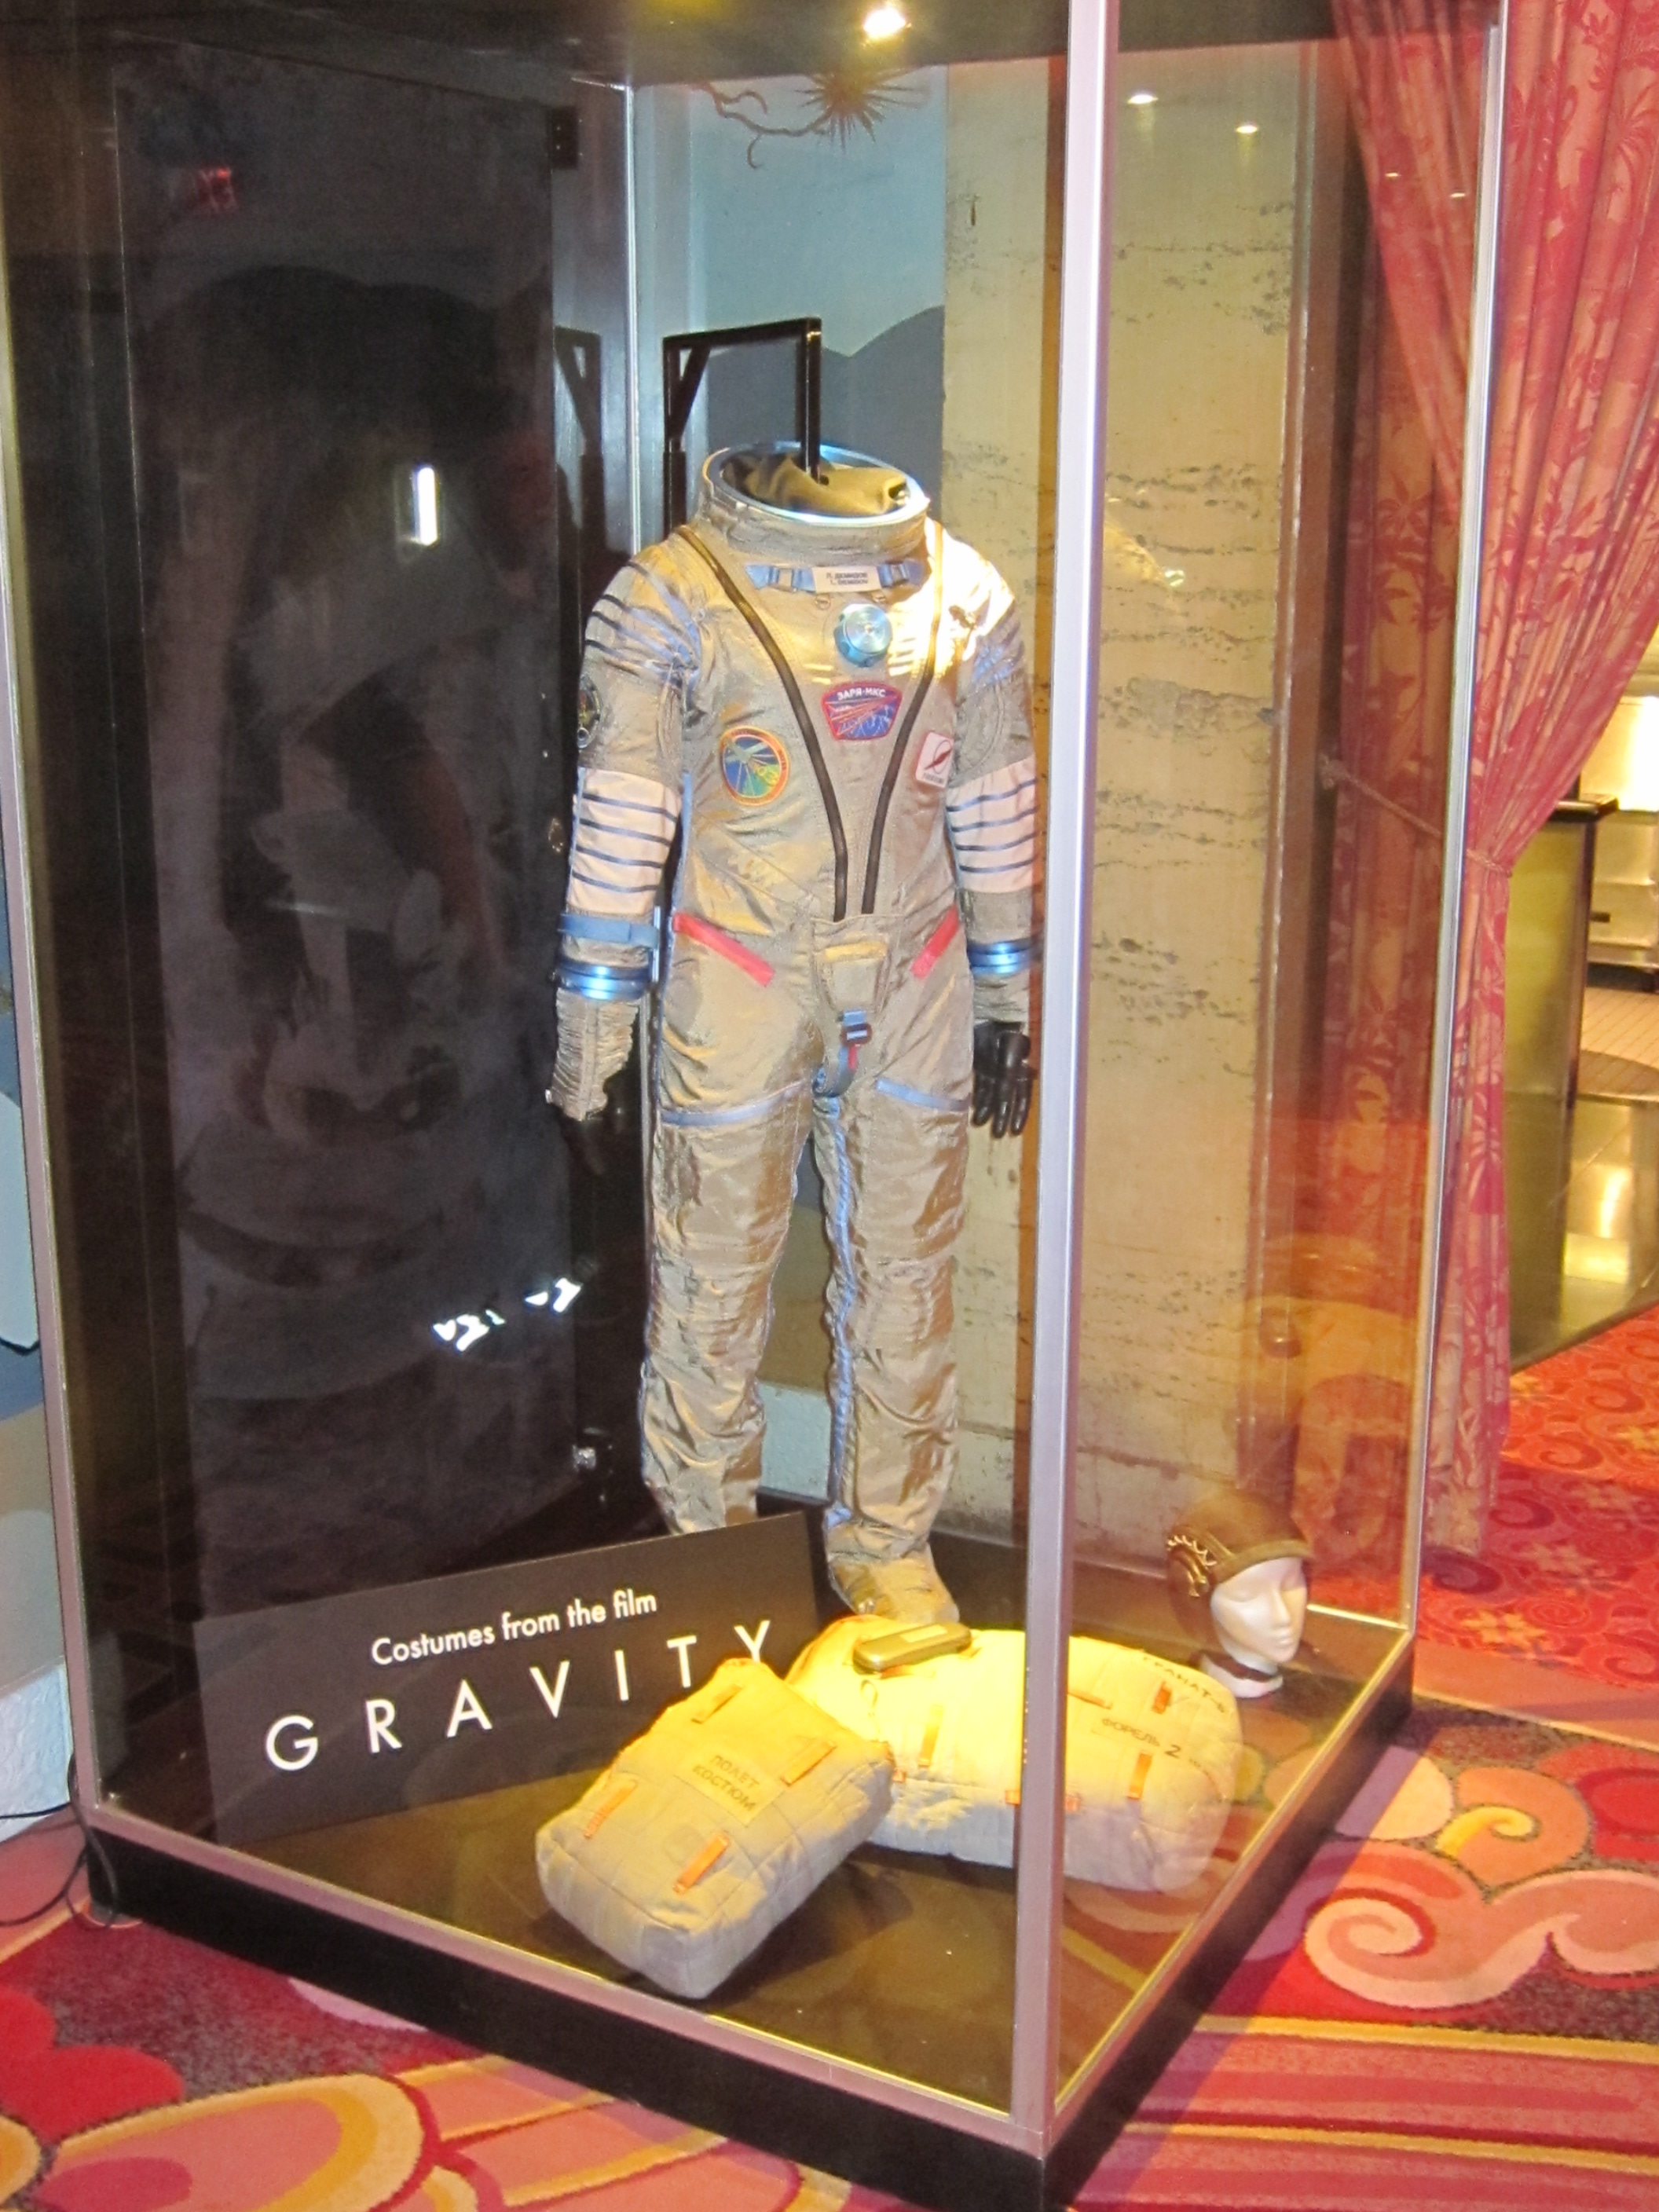 Sandra Bullock's space suit  with some props used in the making of GRAVITY.